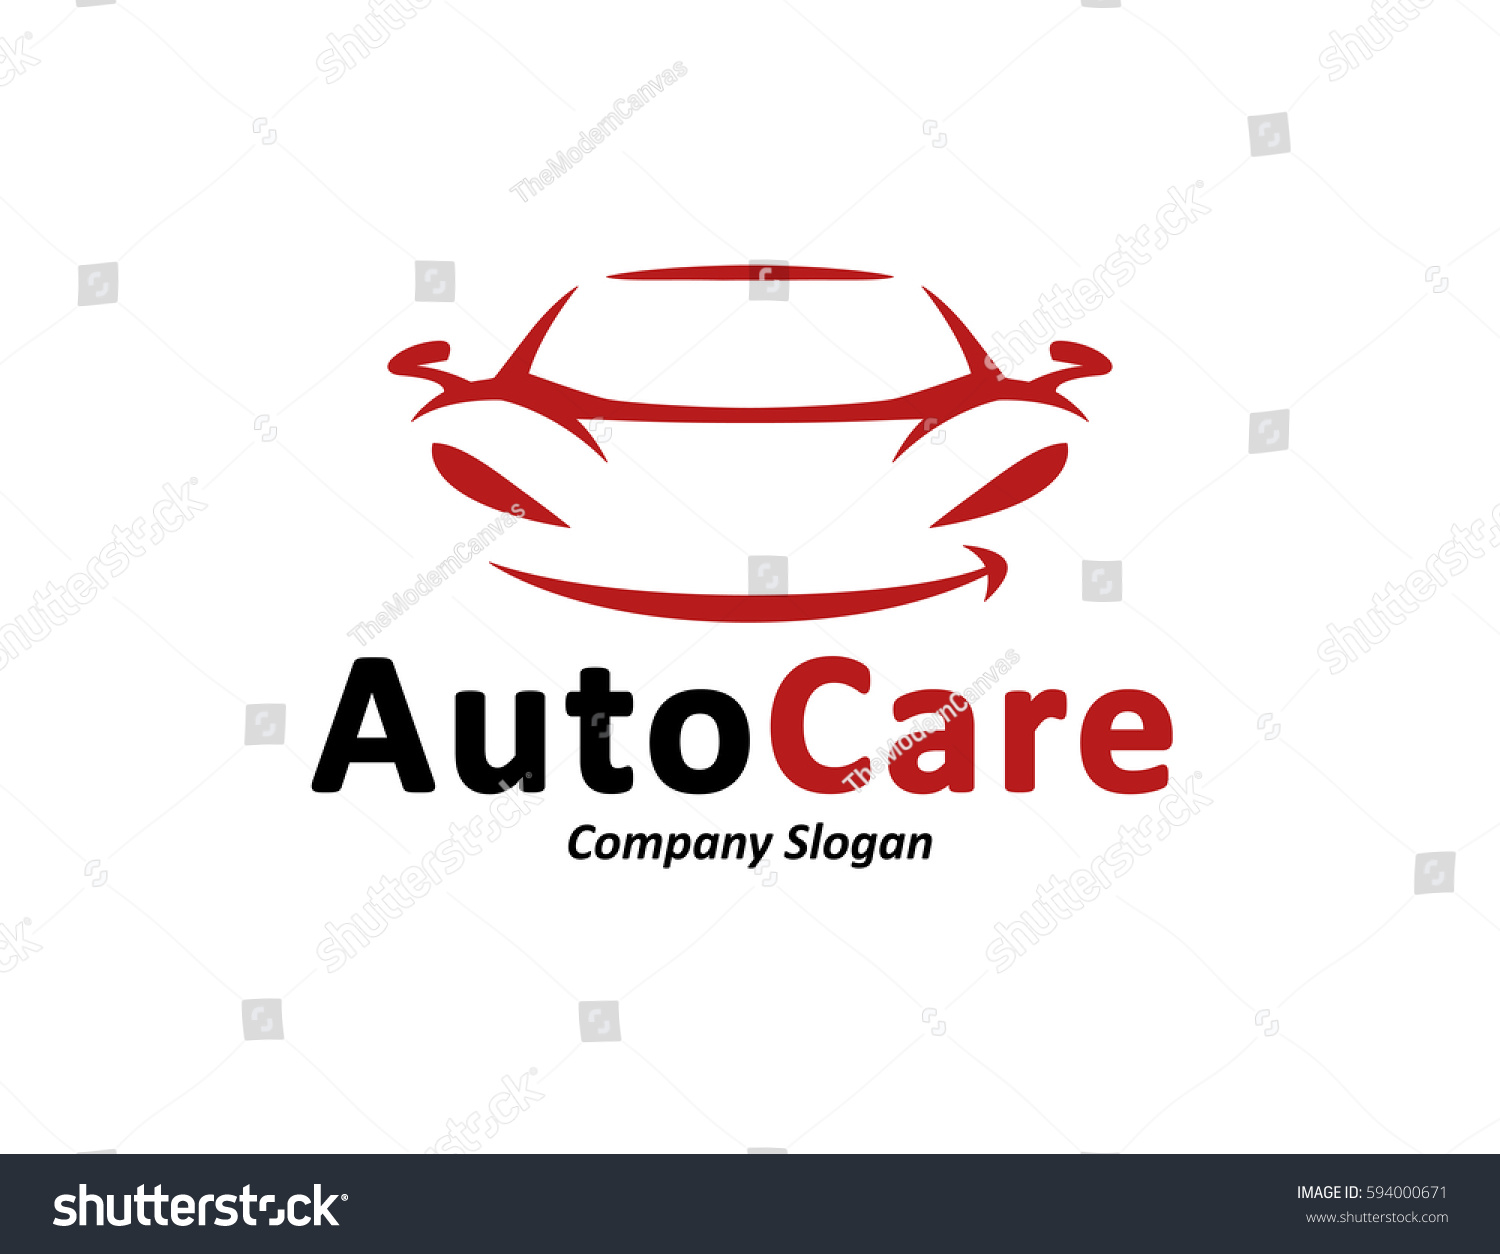 Automotive car care logo design with abstract black and red sports vehicle silhouette icon isolated on white background. Vector illustration. #594000671